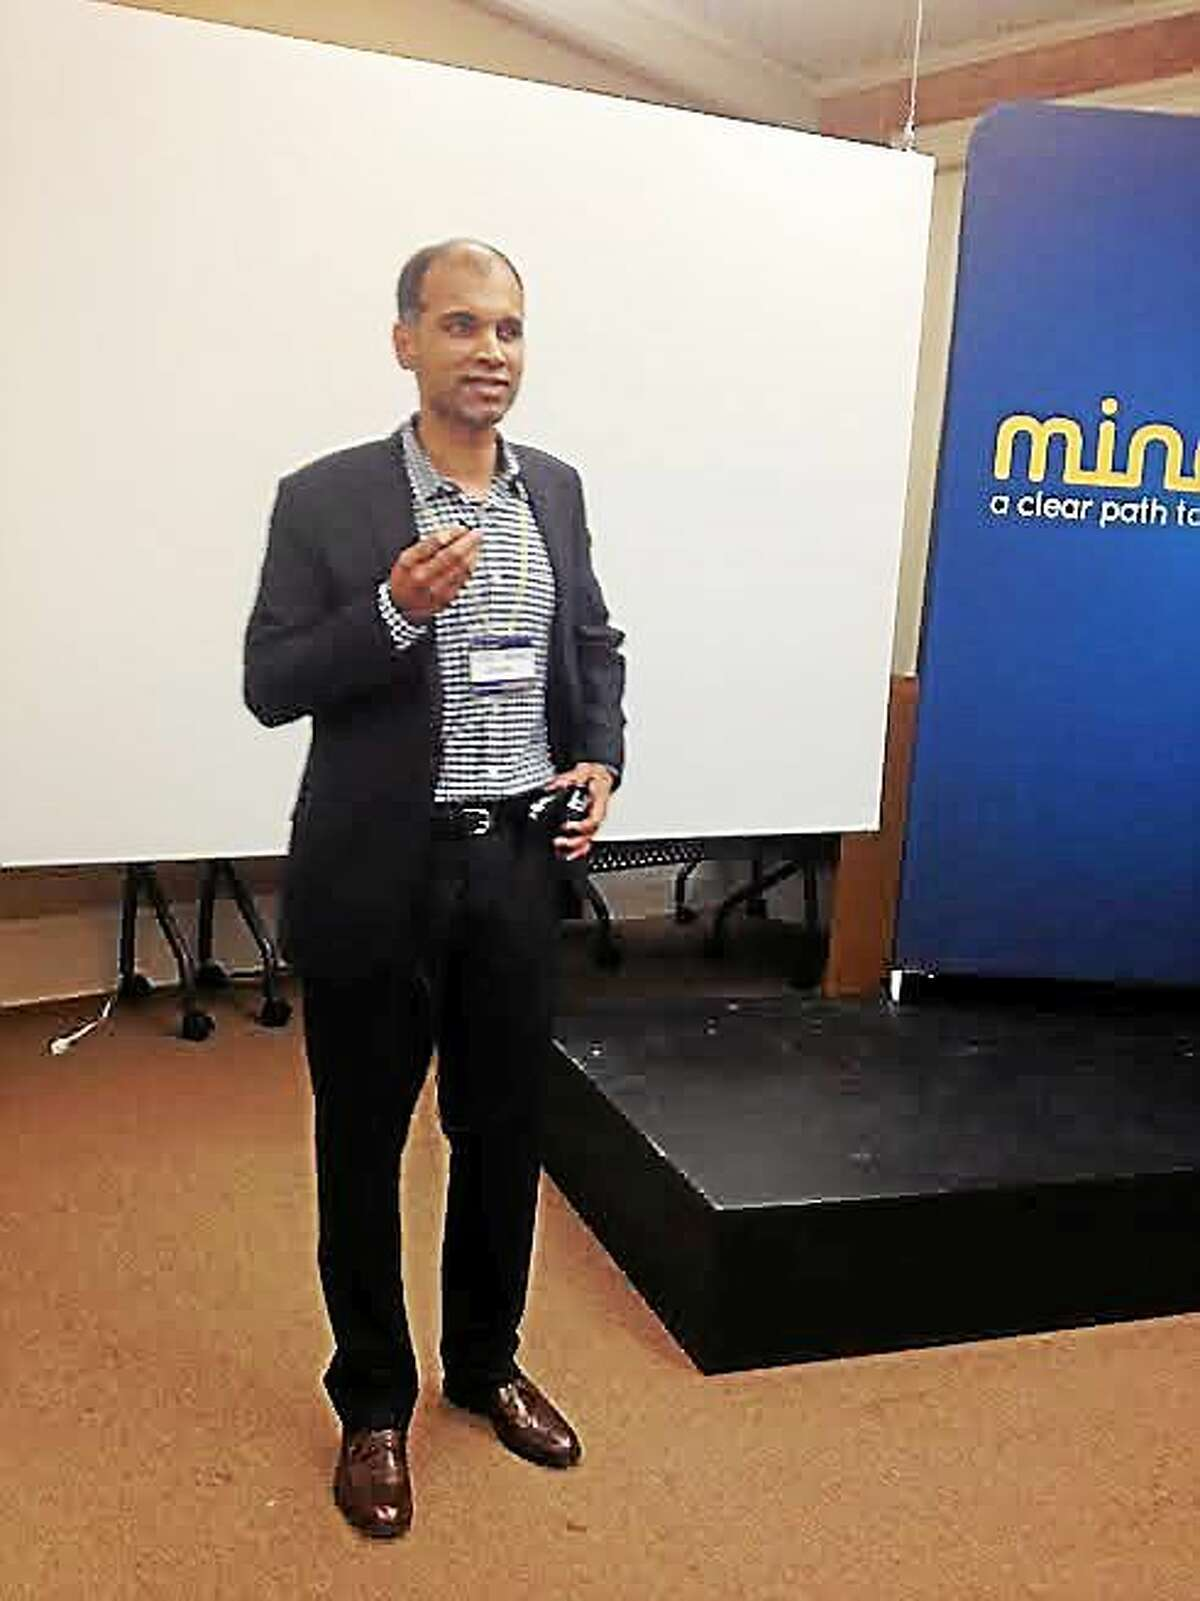 Dr. Vinod Srihari, psychiatrist and director of STEP, at The Grove Thursday to promote a mental health program.